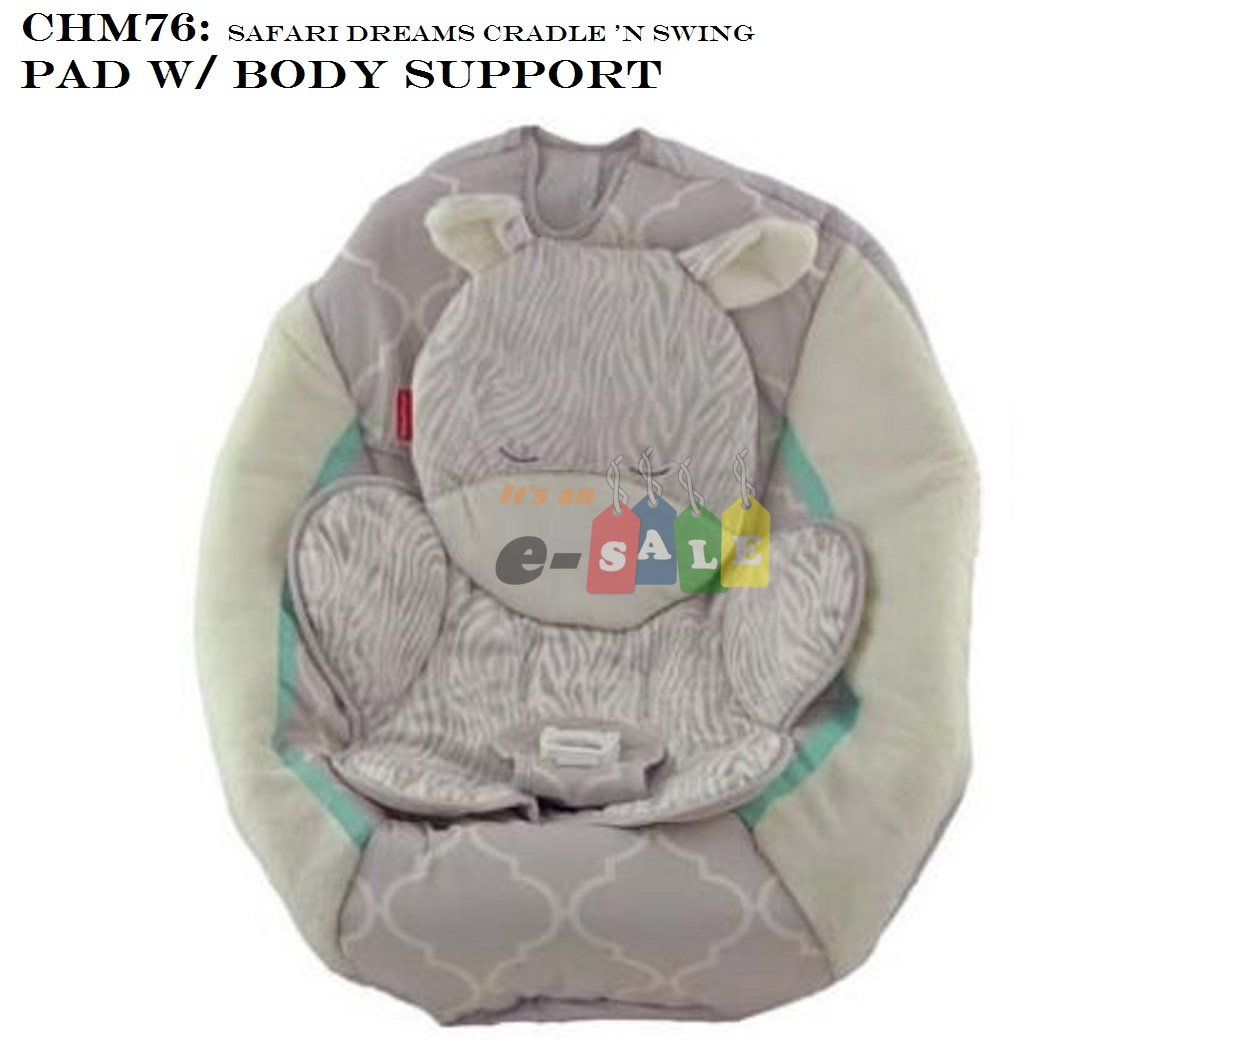 Fisher Price Cradle n Swing Replacement Pad CHM78 Moonlight Meadow Pad